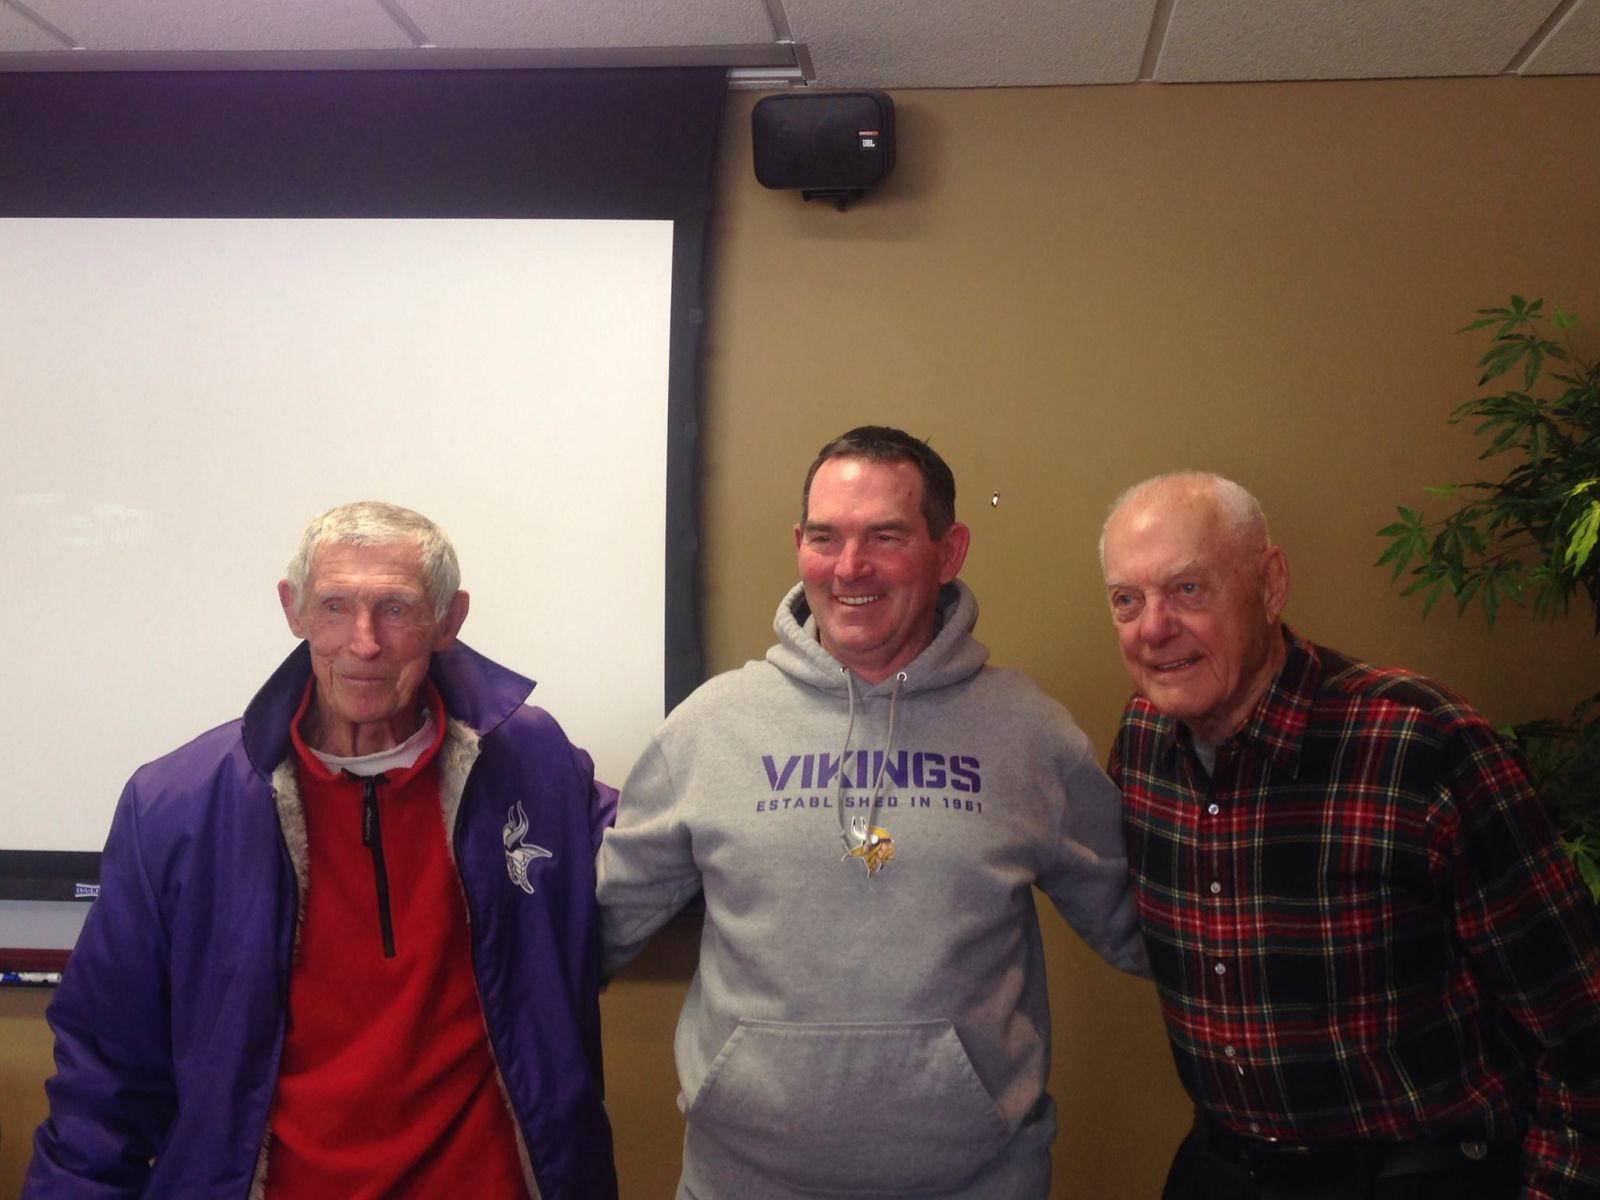 Mike Zimmer and Bud Grant